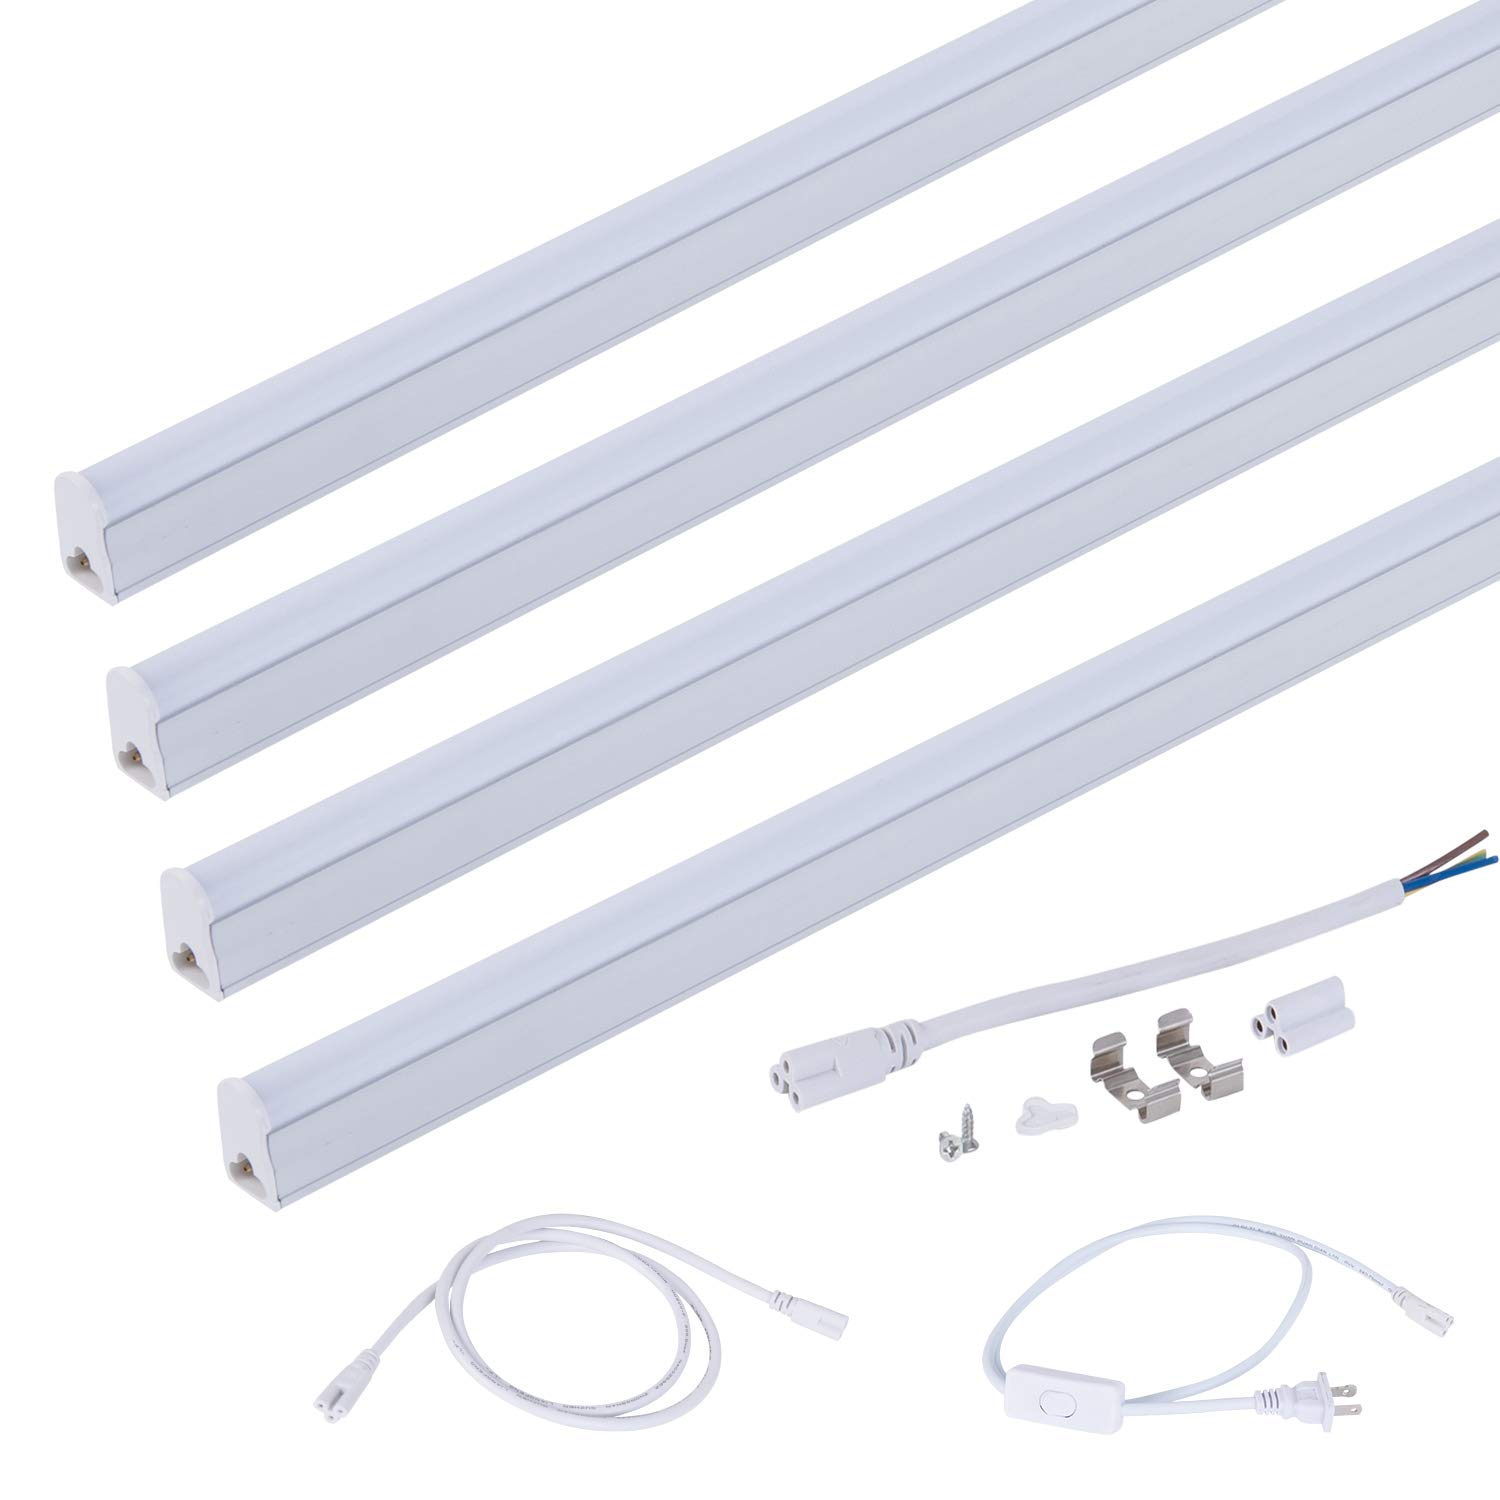 LED Shop Light Bulbs 4ft T5 LED Tube Ceiling Single Light Fixture Fluorescent Replacement Lamps for Room Garage(18W 4000K Daylight 4Pack)